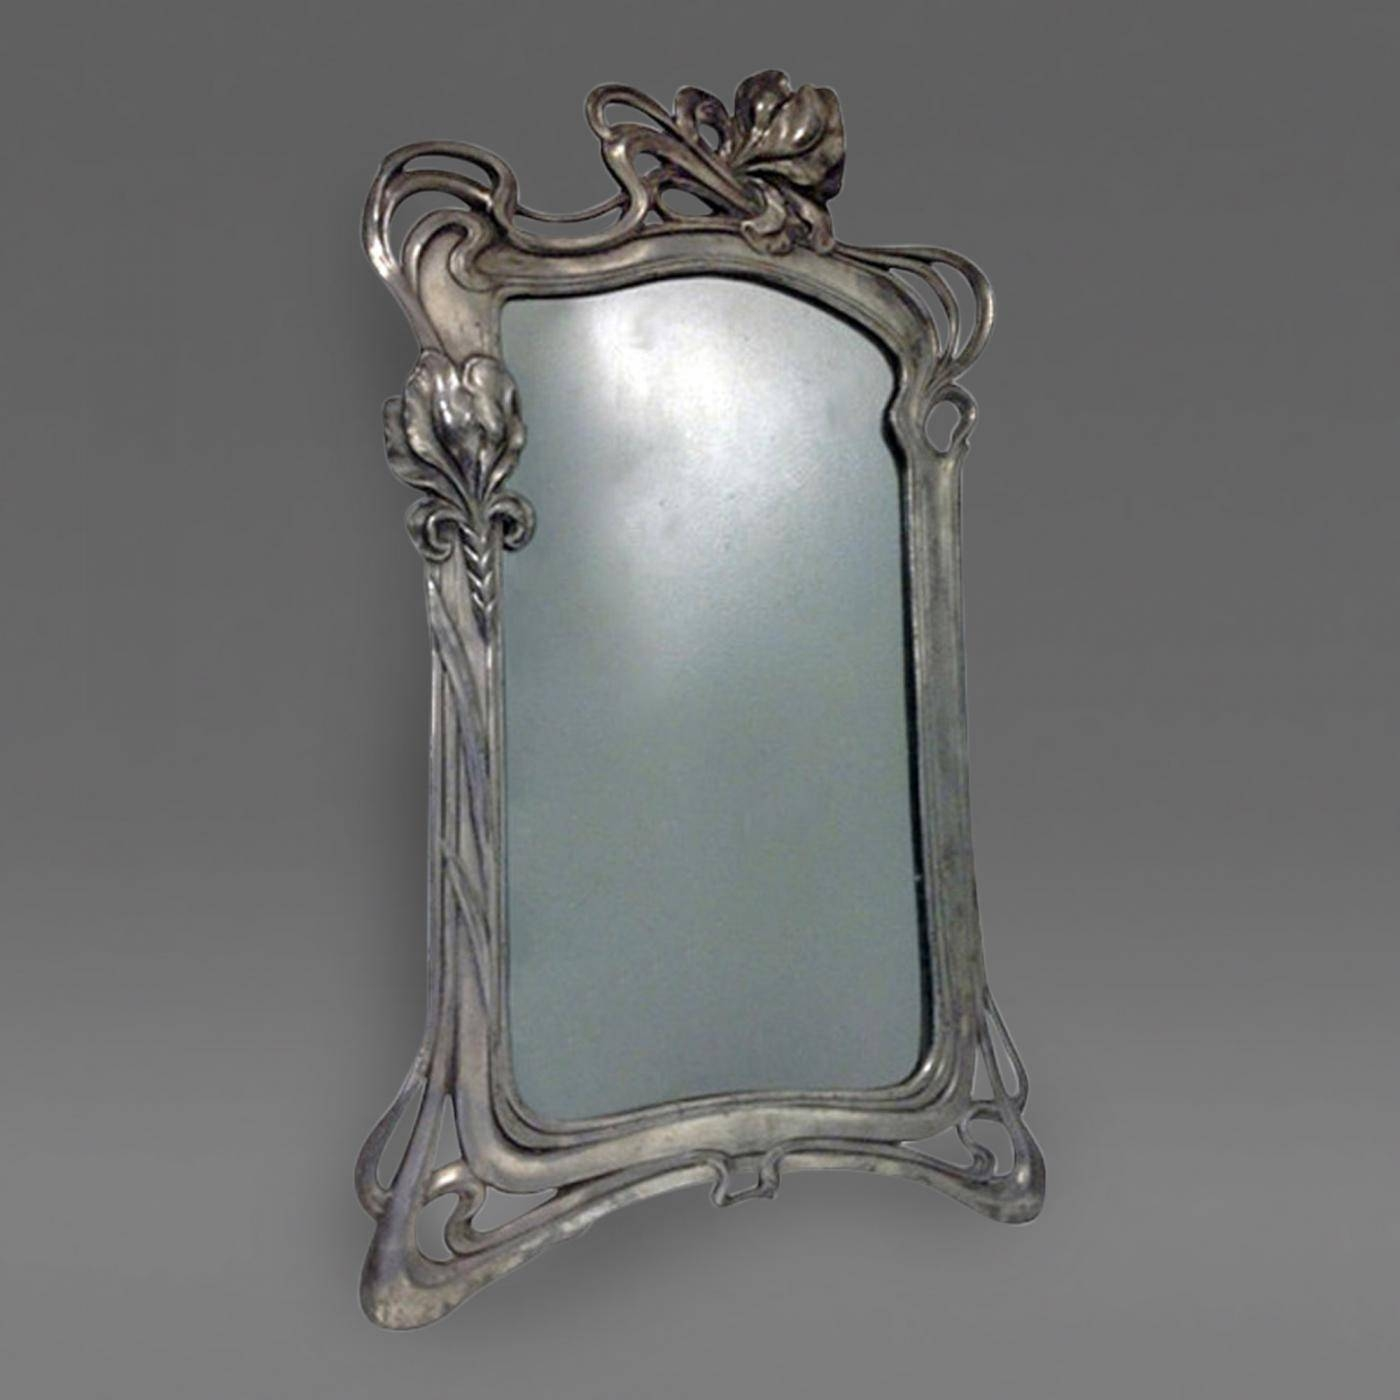 Art Nouveau Mirror Argentor C.1900 regarding Art Nouveau Mirrors (Image 8 of 25)